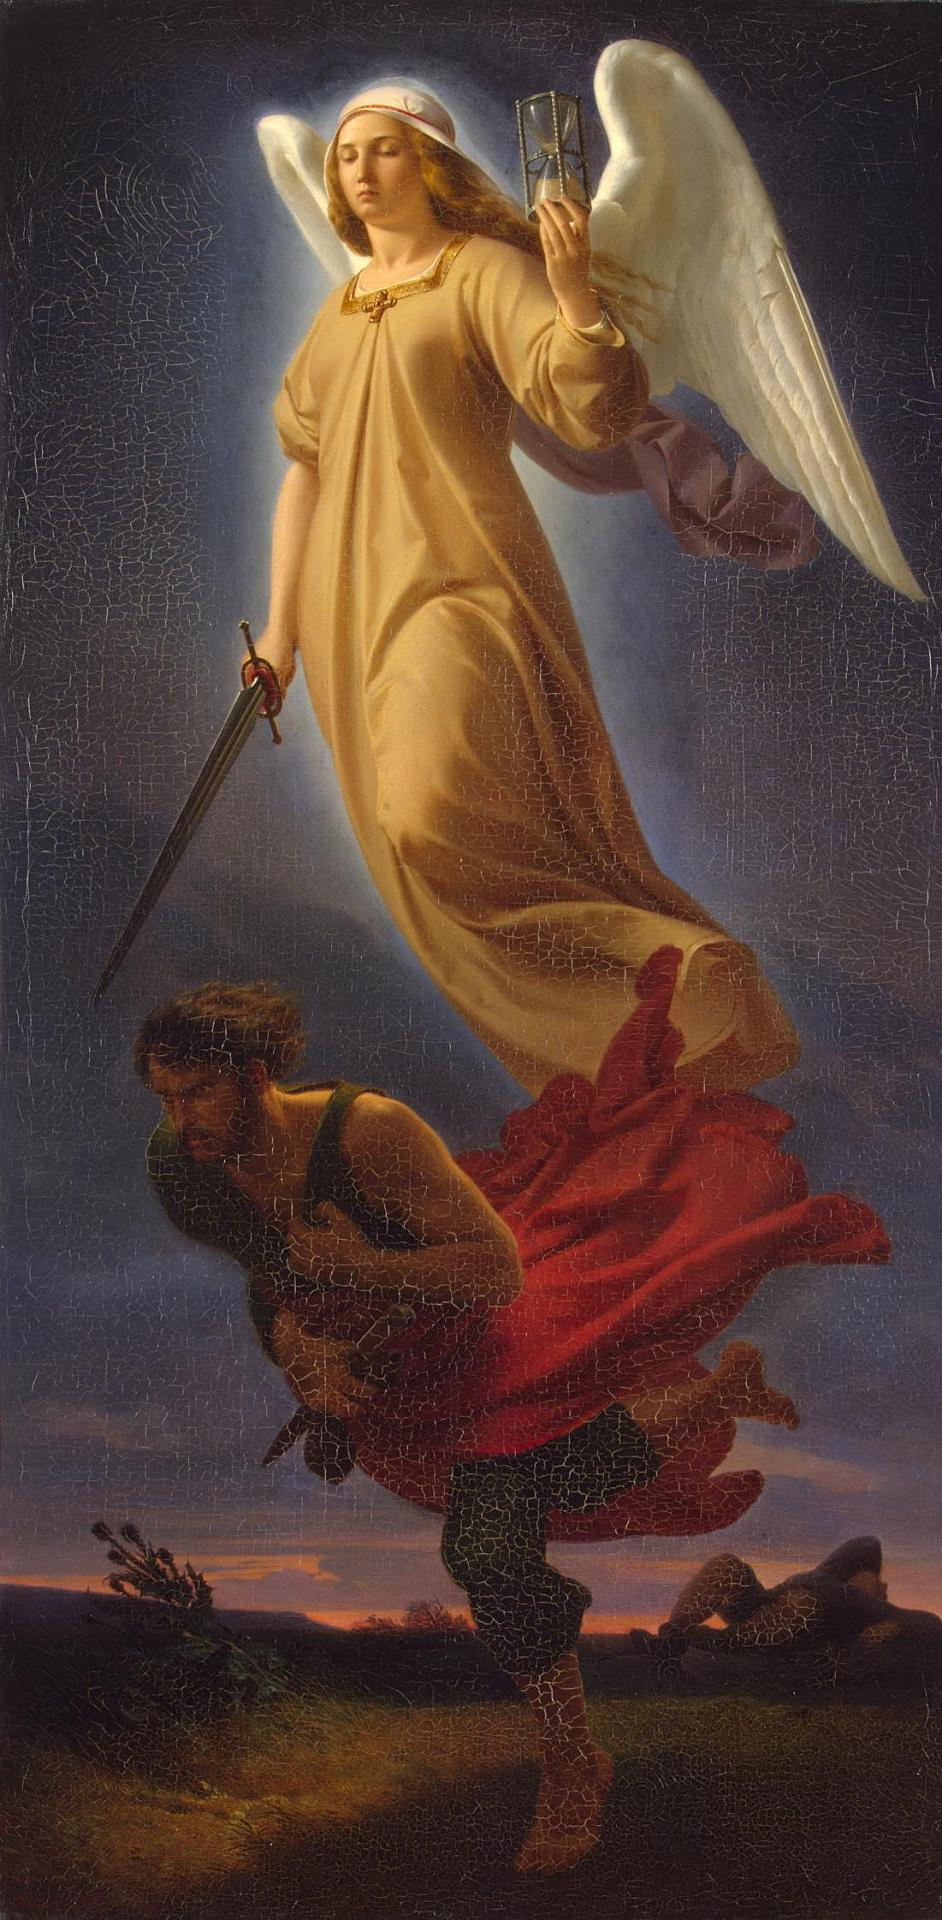 https://i2.wp.com/upload.wikimedia.org/wikipedia/commons/6/61/Alfred_Rethel_002.jpg